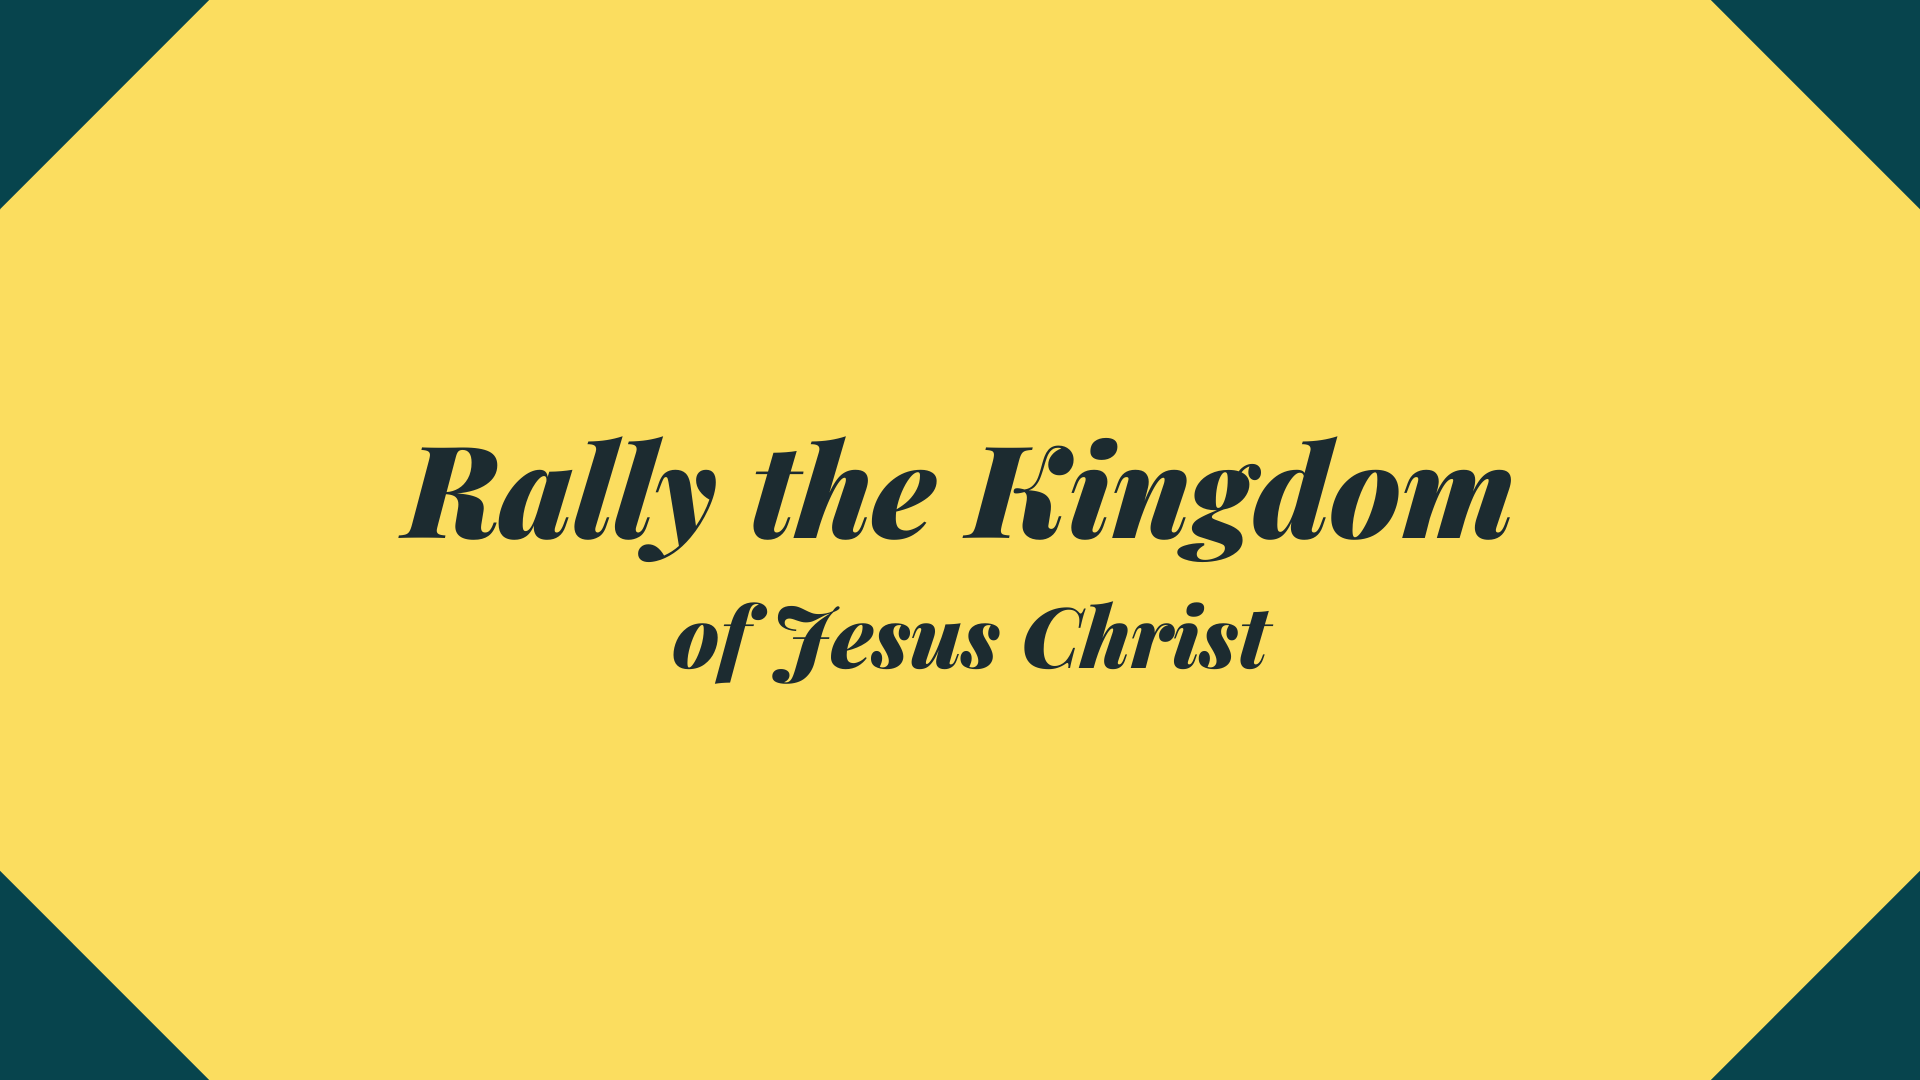 Rally the Kingdom of Jesus Christ